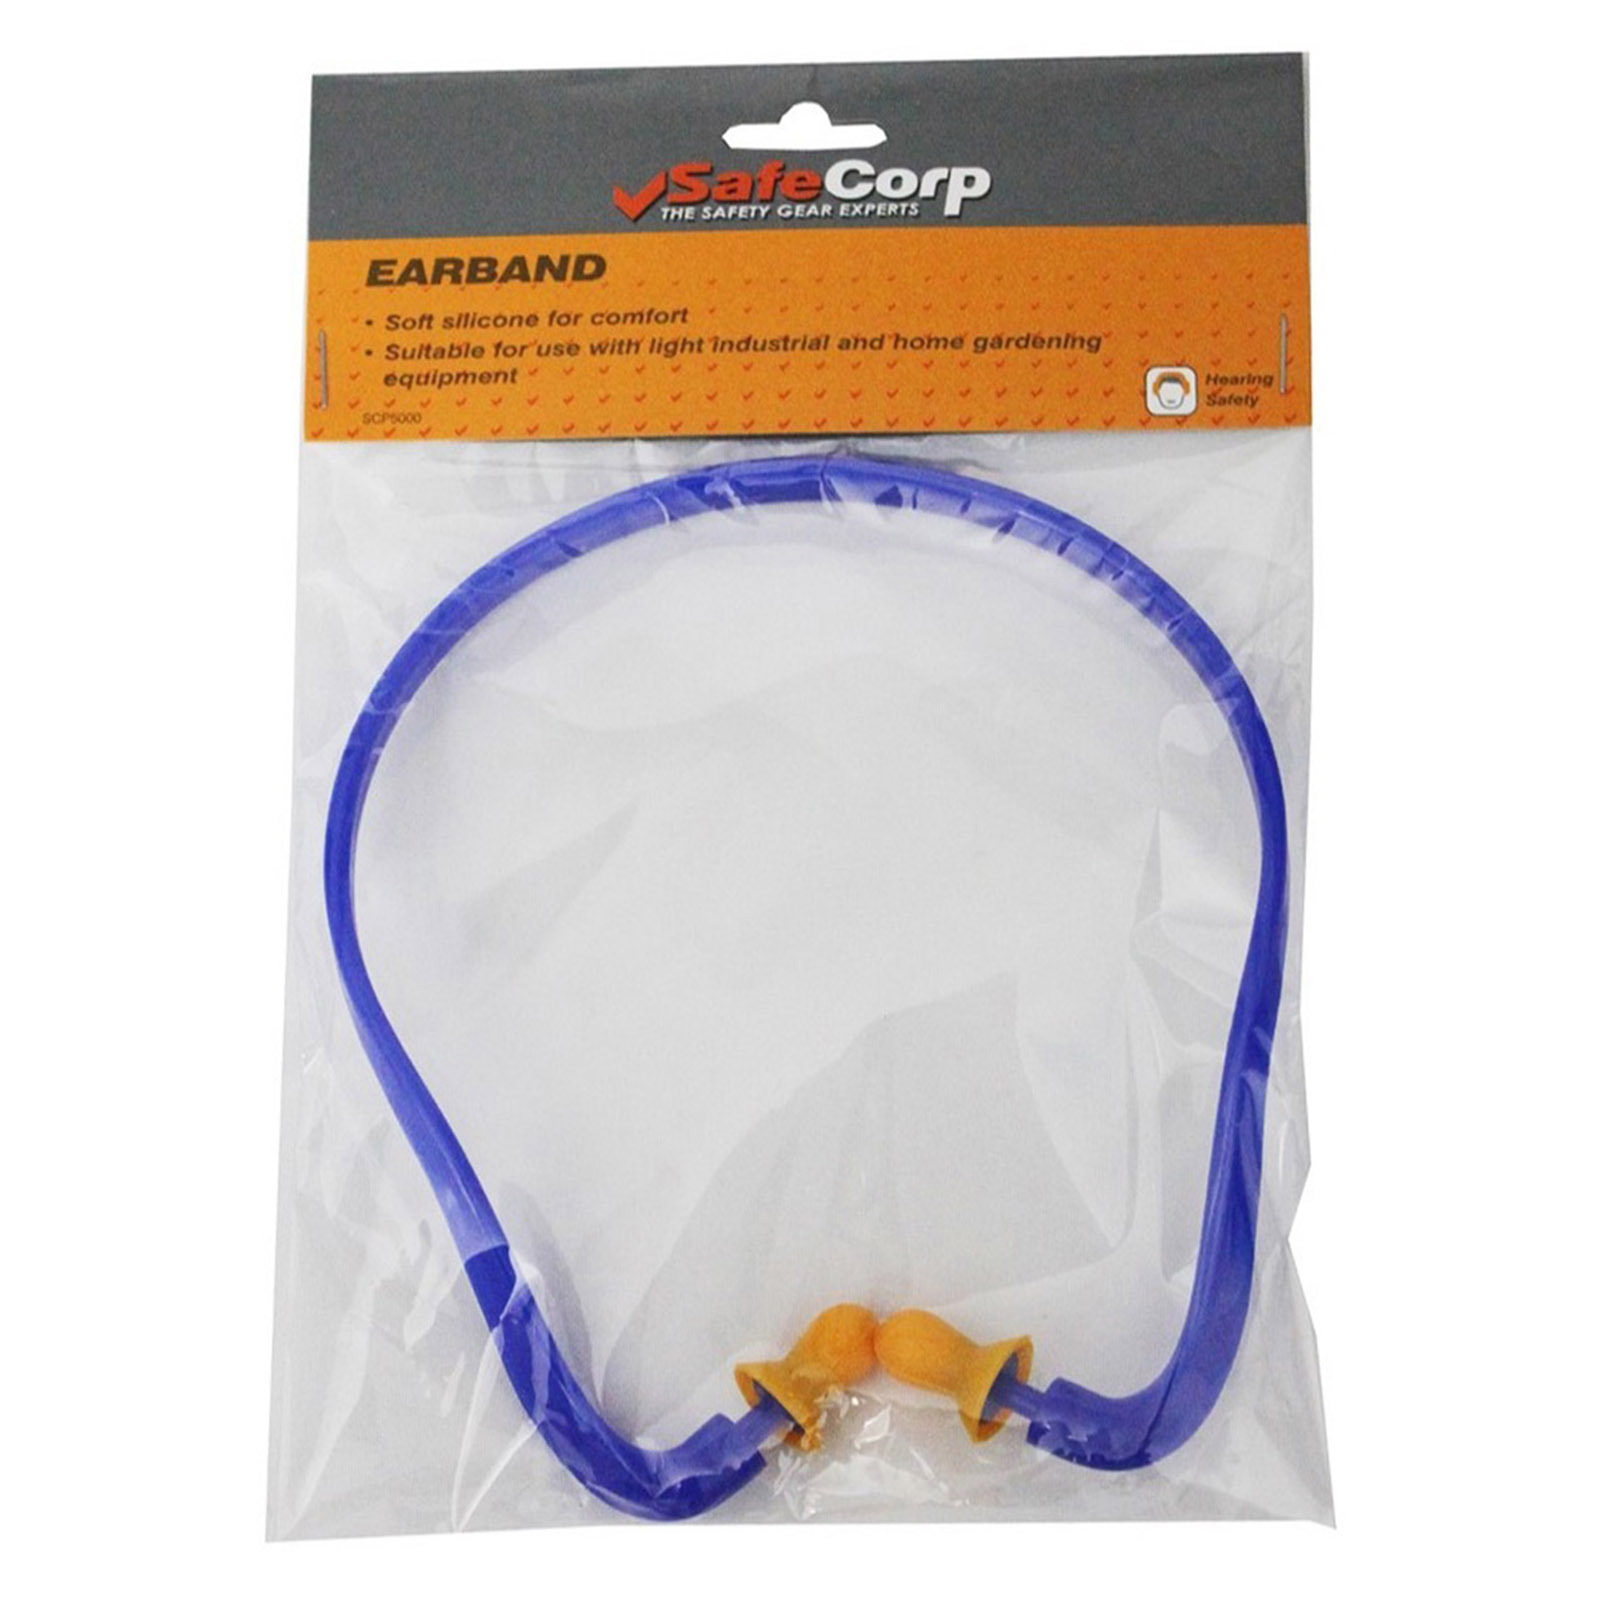 Safecorp Earband Banded Ear Plugs